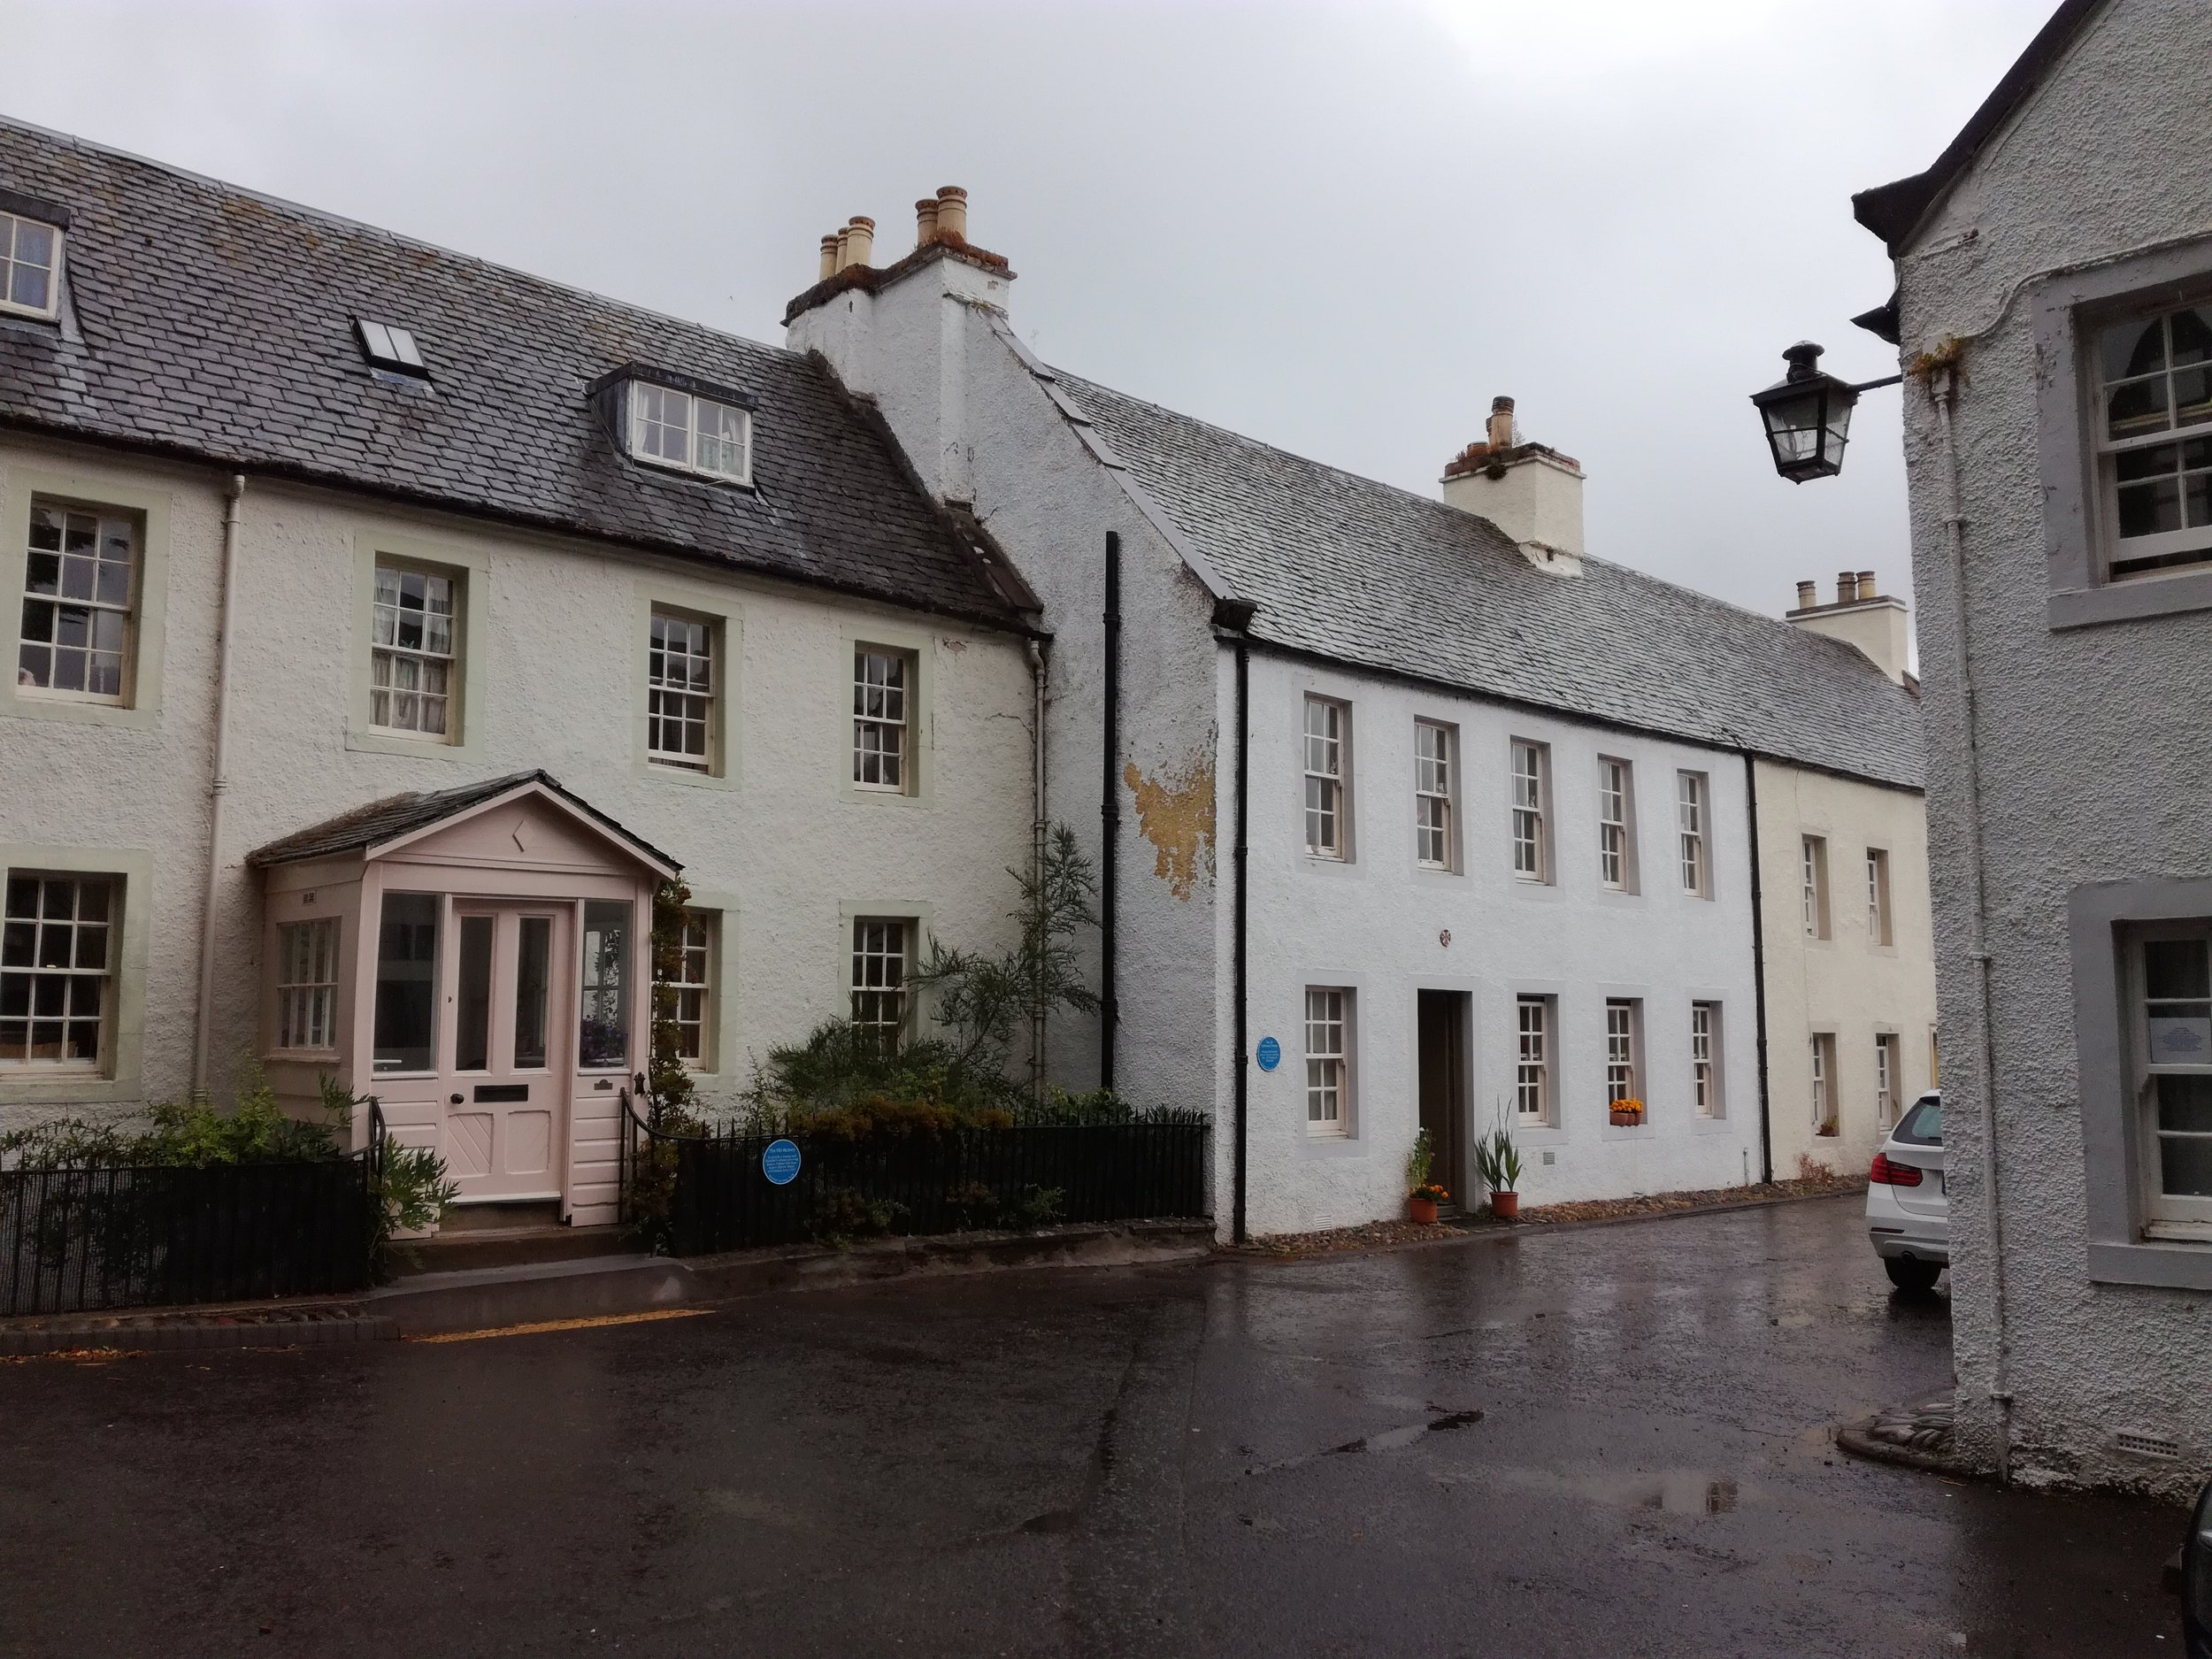 Dunkeld, Scottish Highlands, Scottish tours with walks, small group adventures, Roaming Scotland.jpg